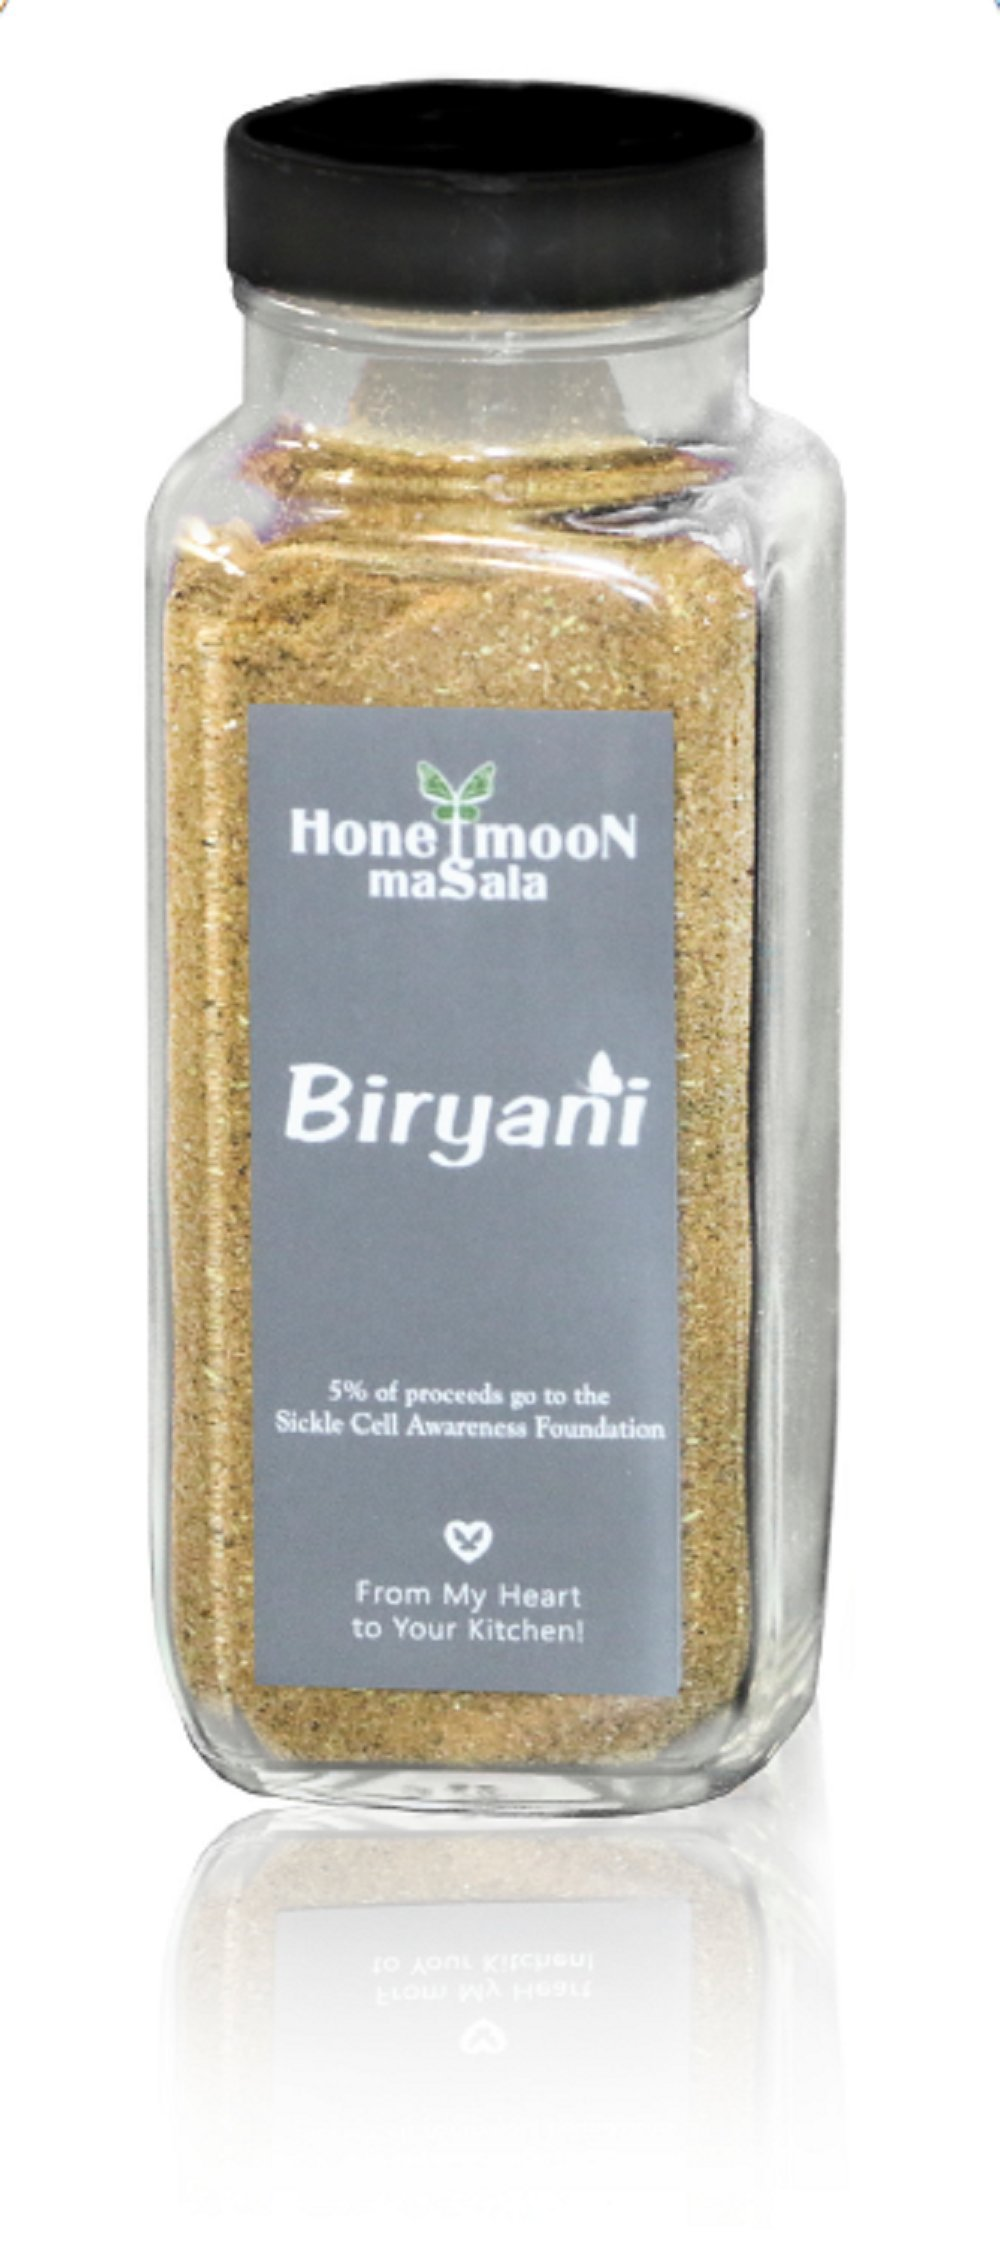 Biryani Spice Blend by Honeymoon Masala, 5.2 oz Glass Bottle